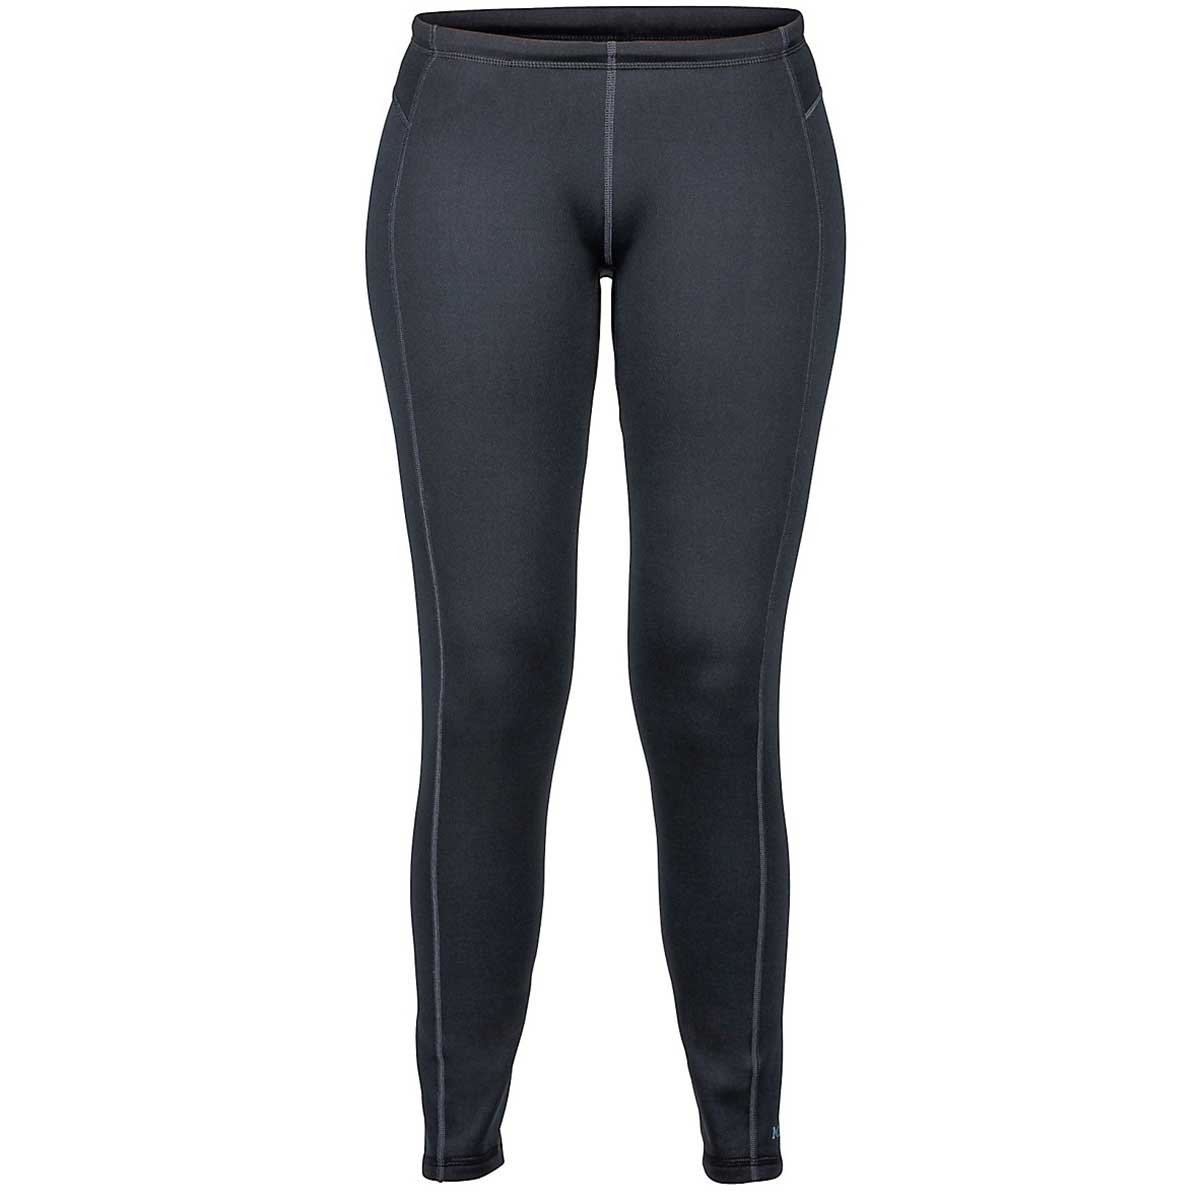 Marmot women's Stretch Fleece Pants in Black front view